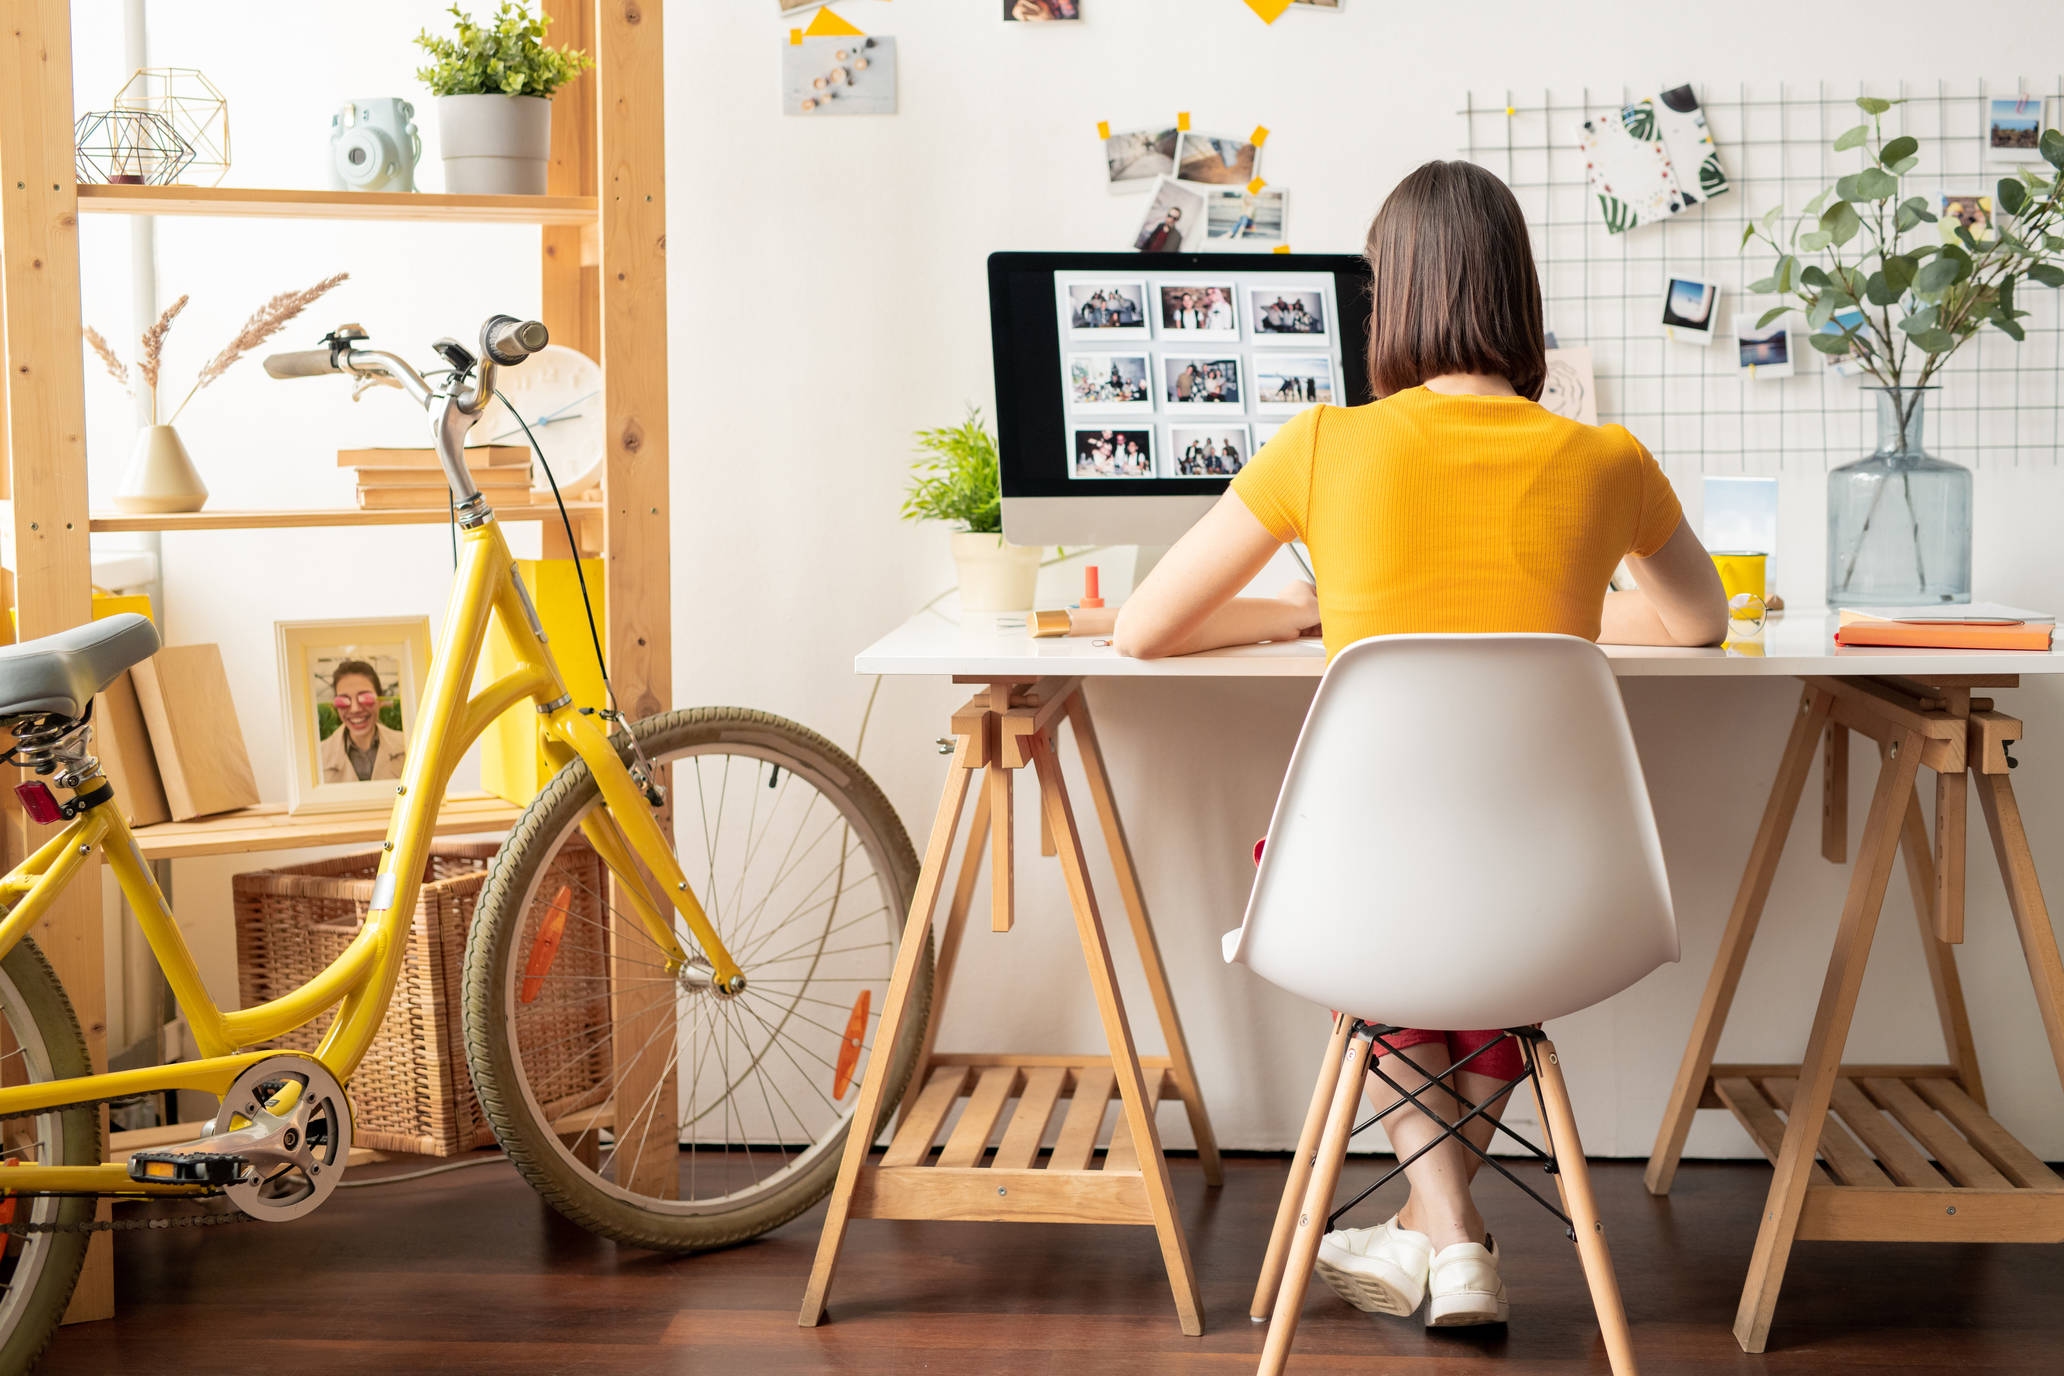 Why you should have renter's insurance when working from home